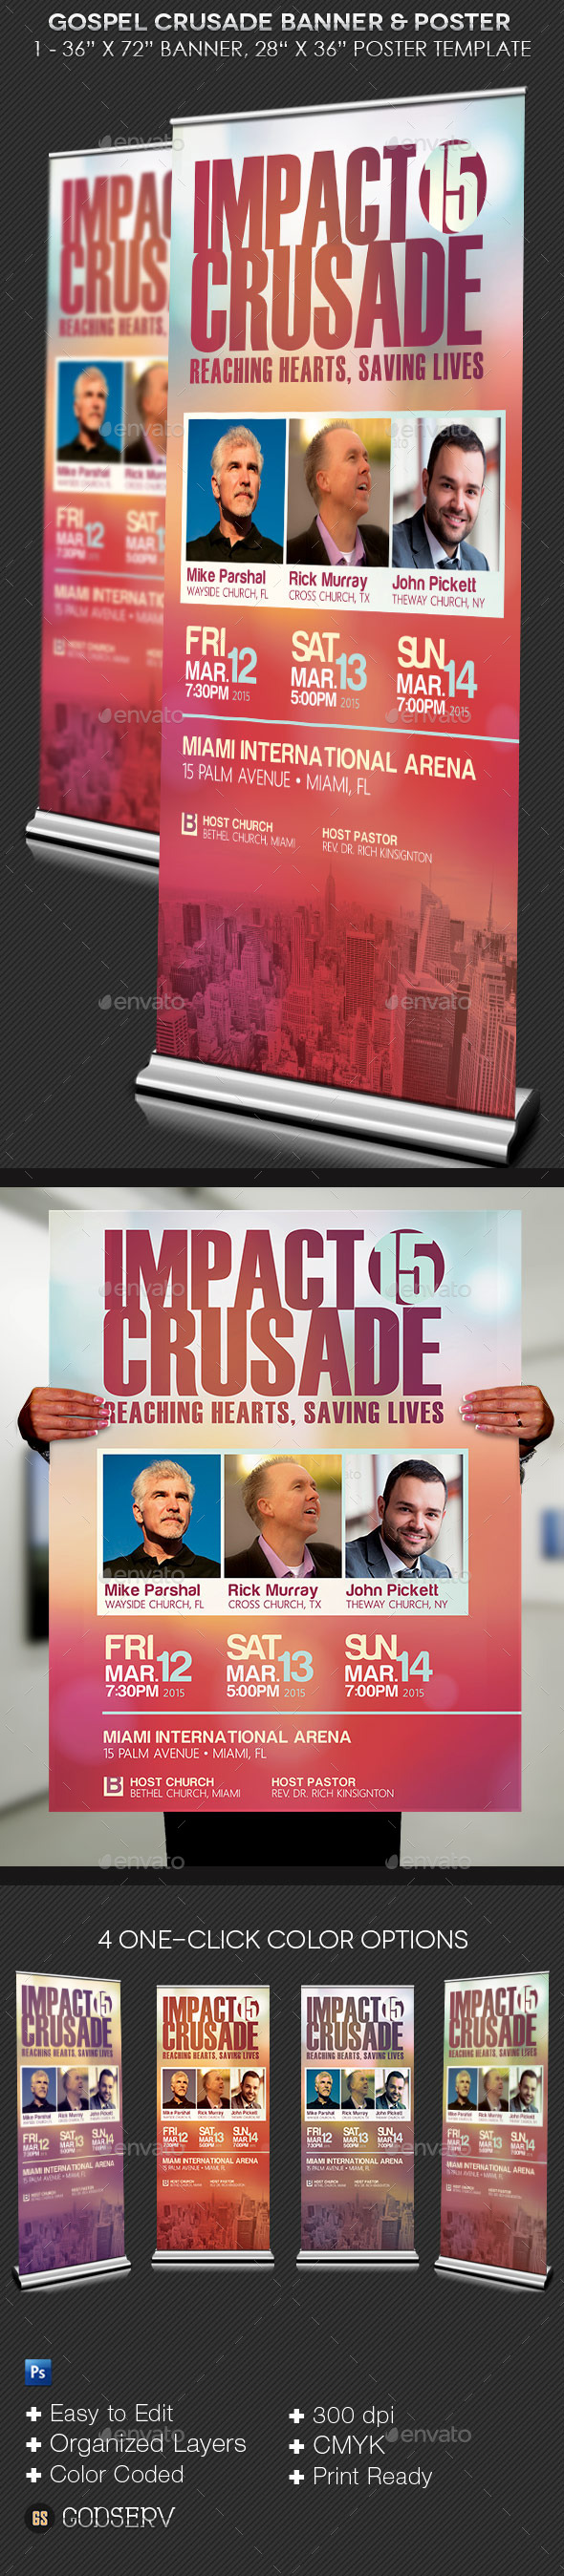 Gospel Crusade Banner Plus Poster Template - Signage Print Templates